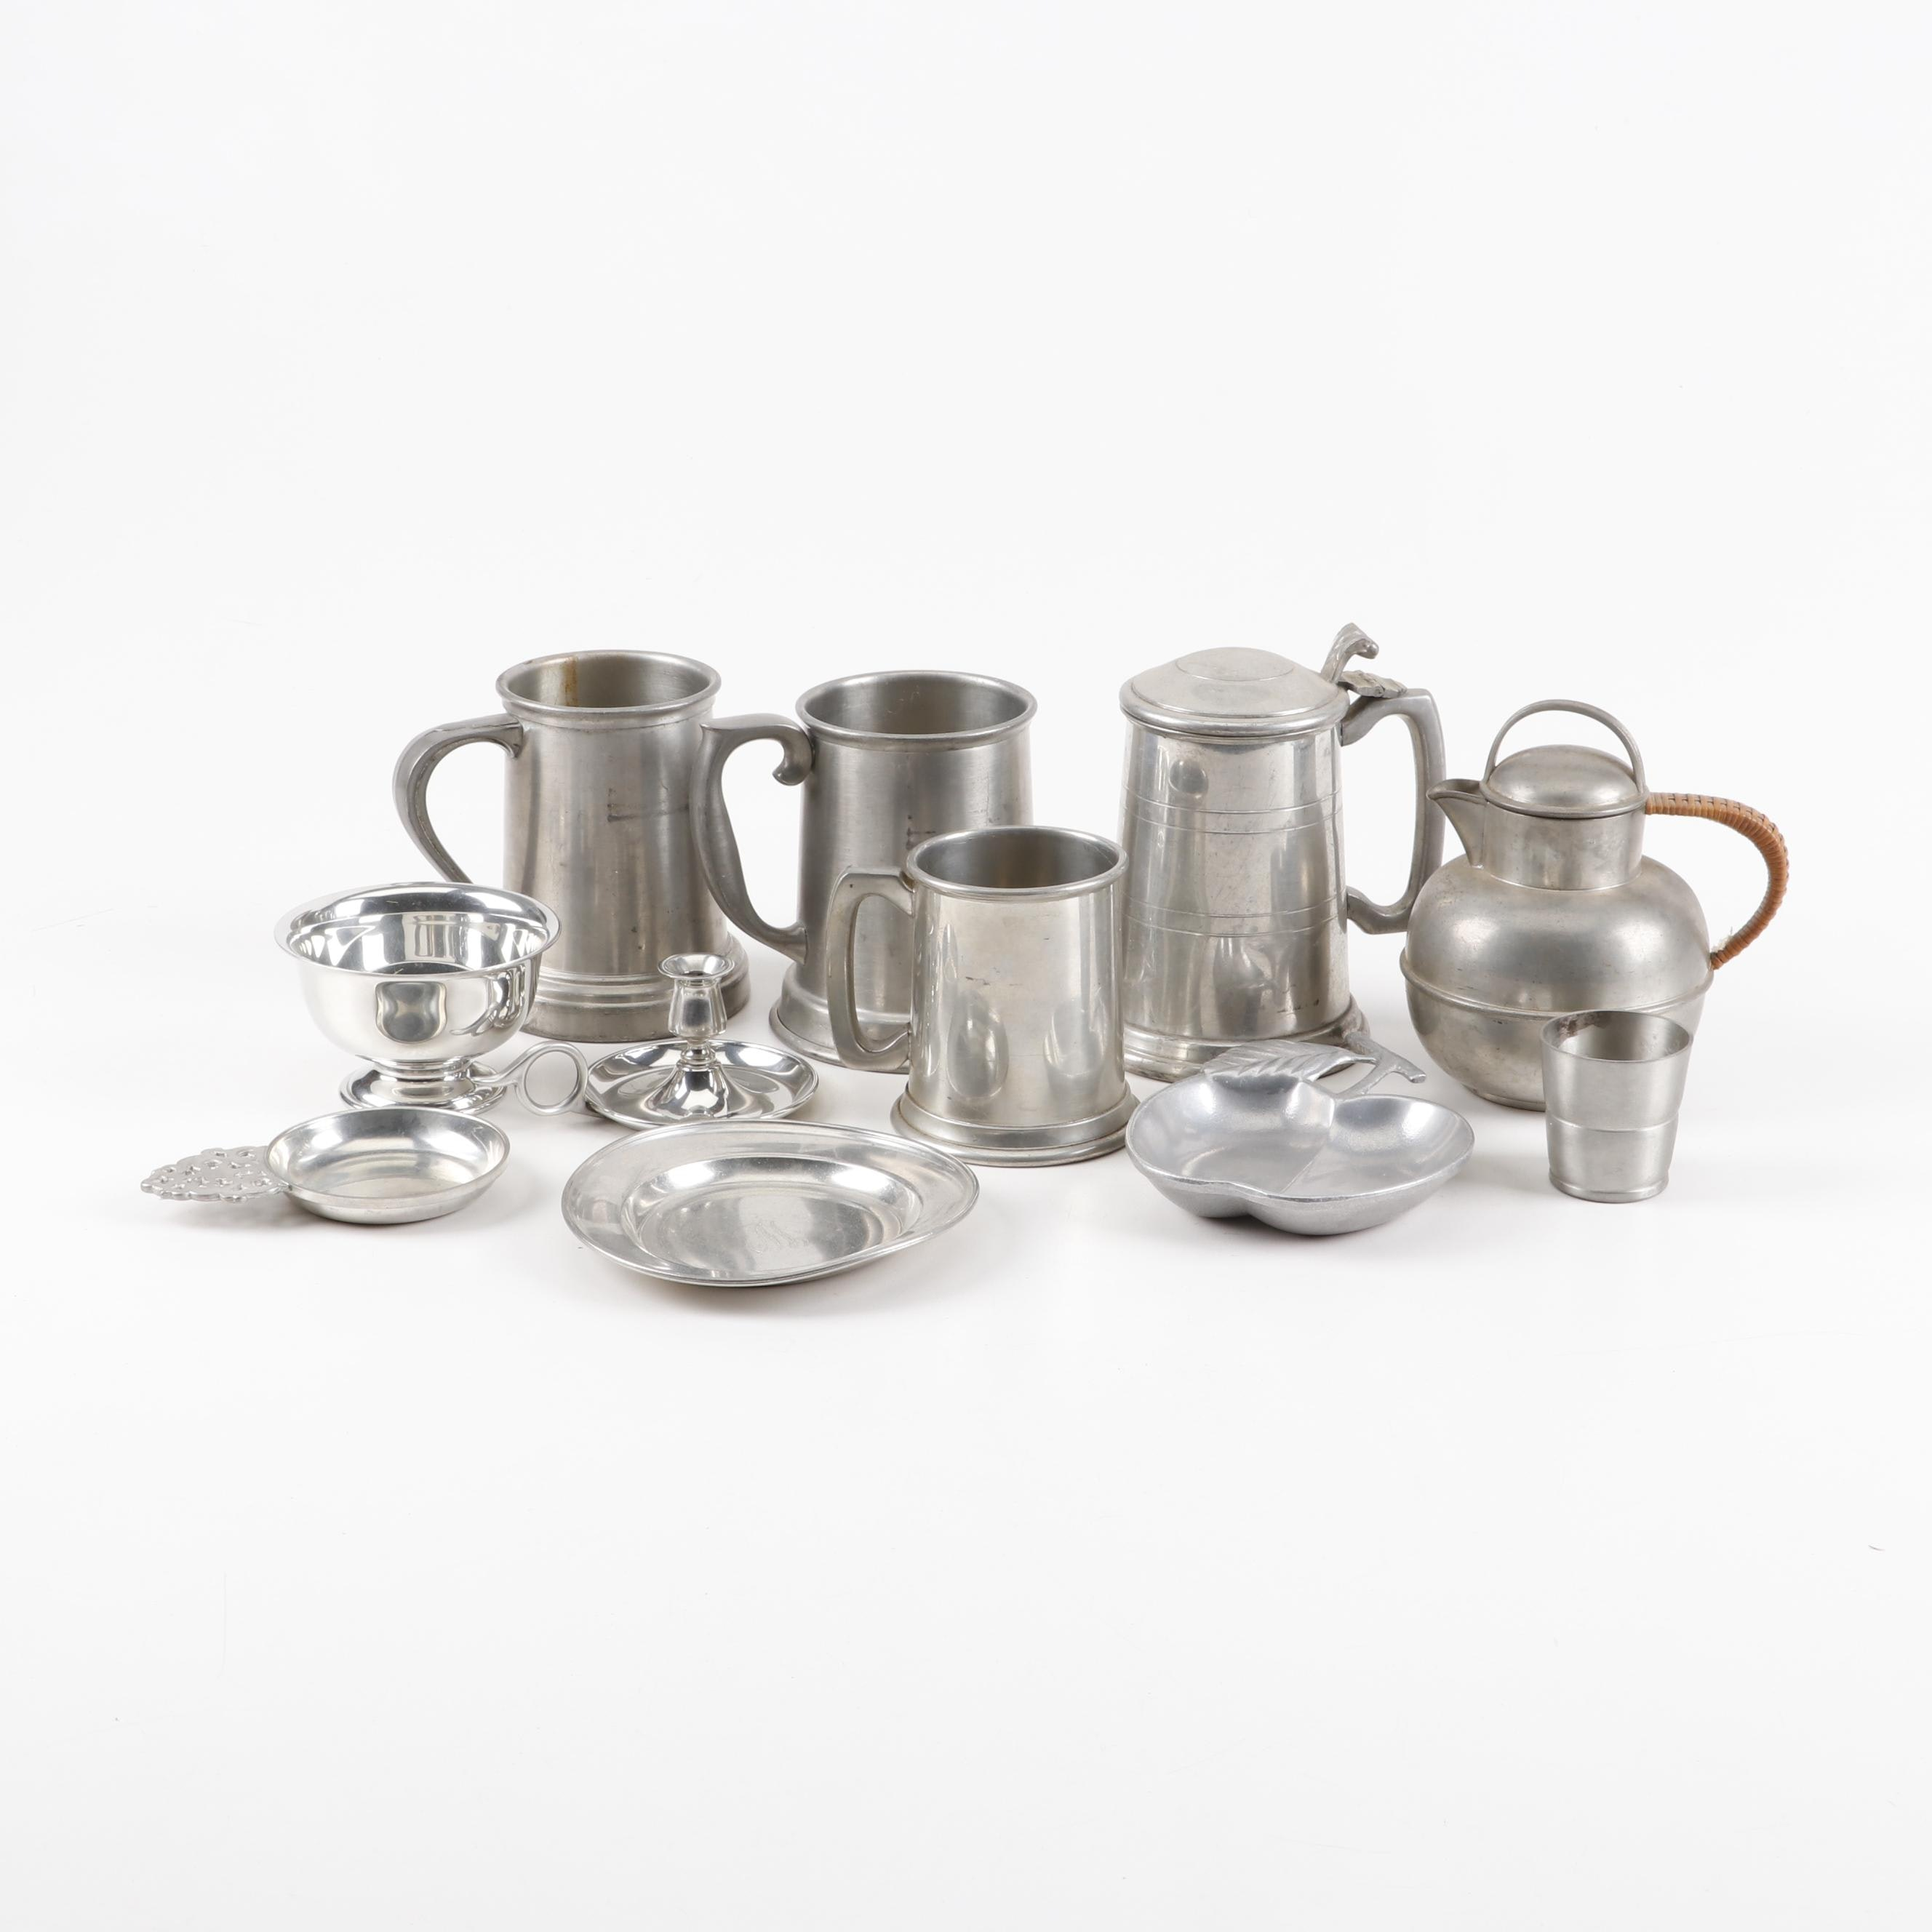 Pewter Tankards and Other Tableware, Mid to Late 20th Century